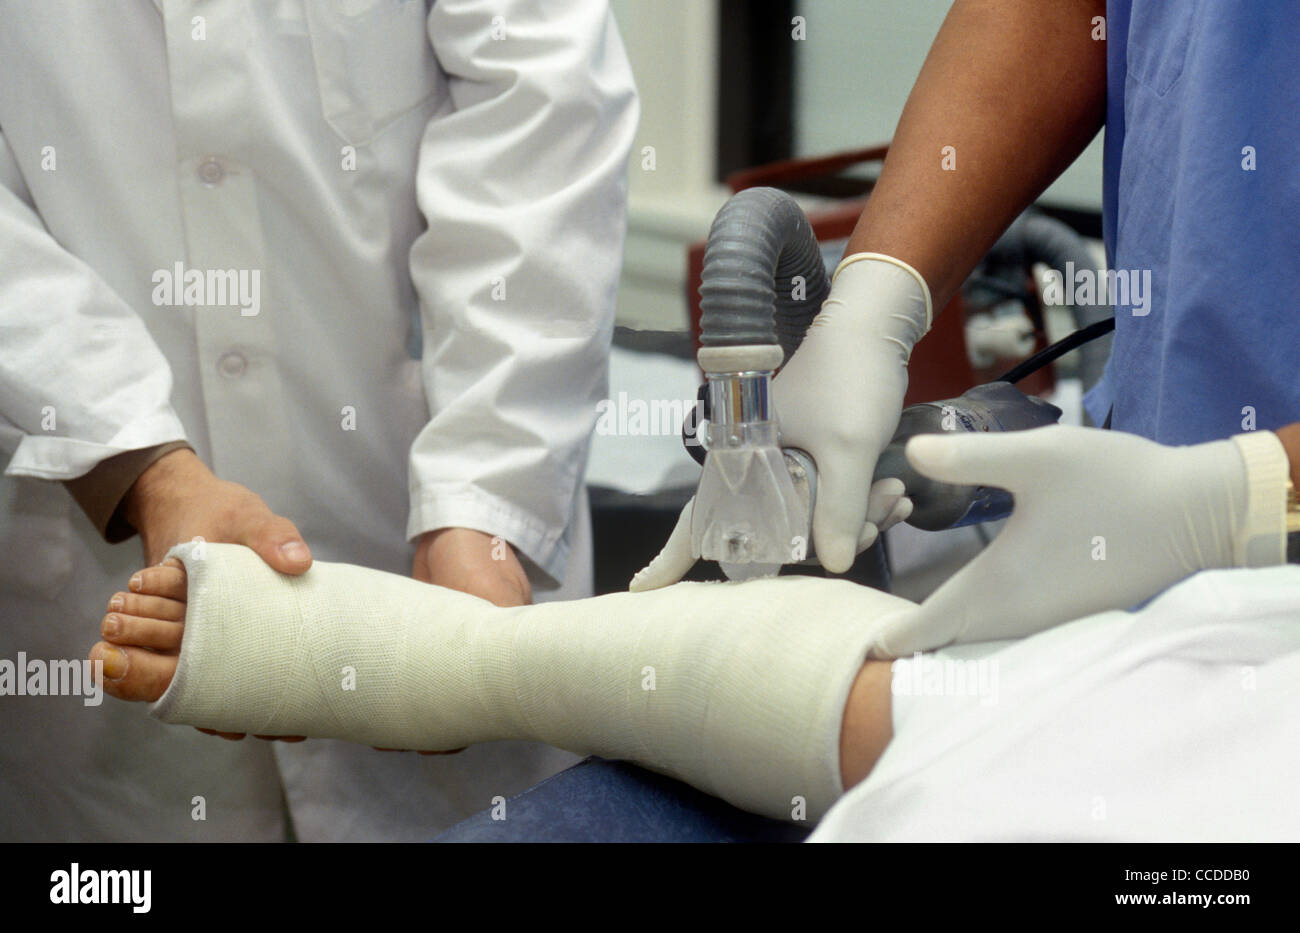 Orthopedic doctors remove a cast from a patient with a broken bone. - Stock Image